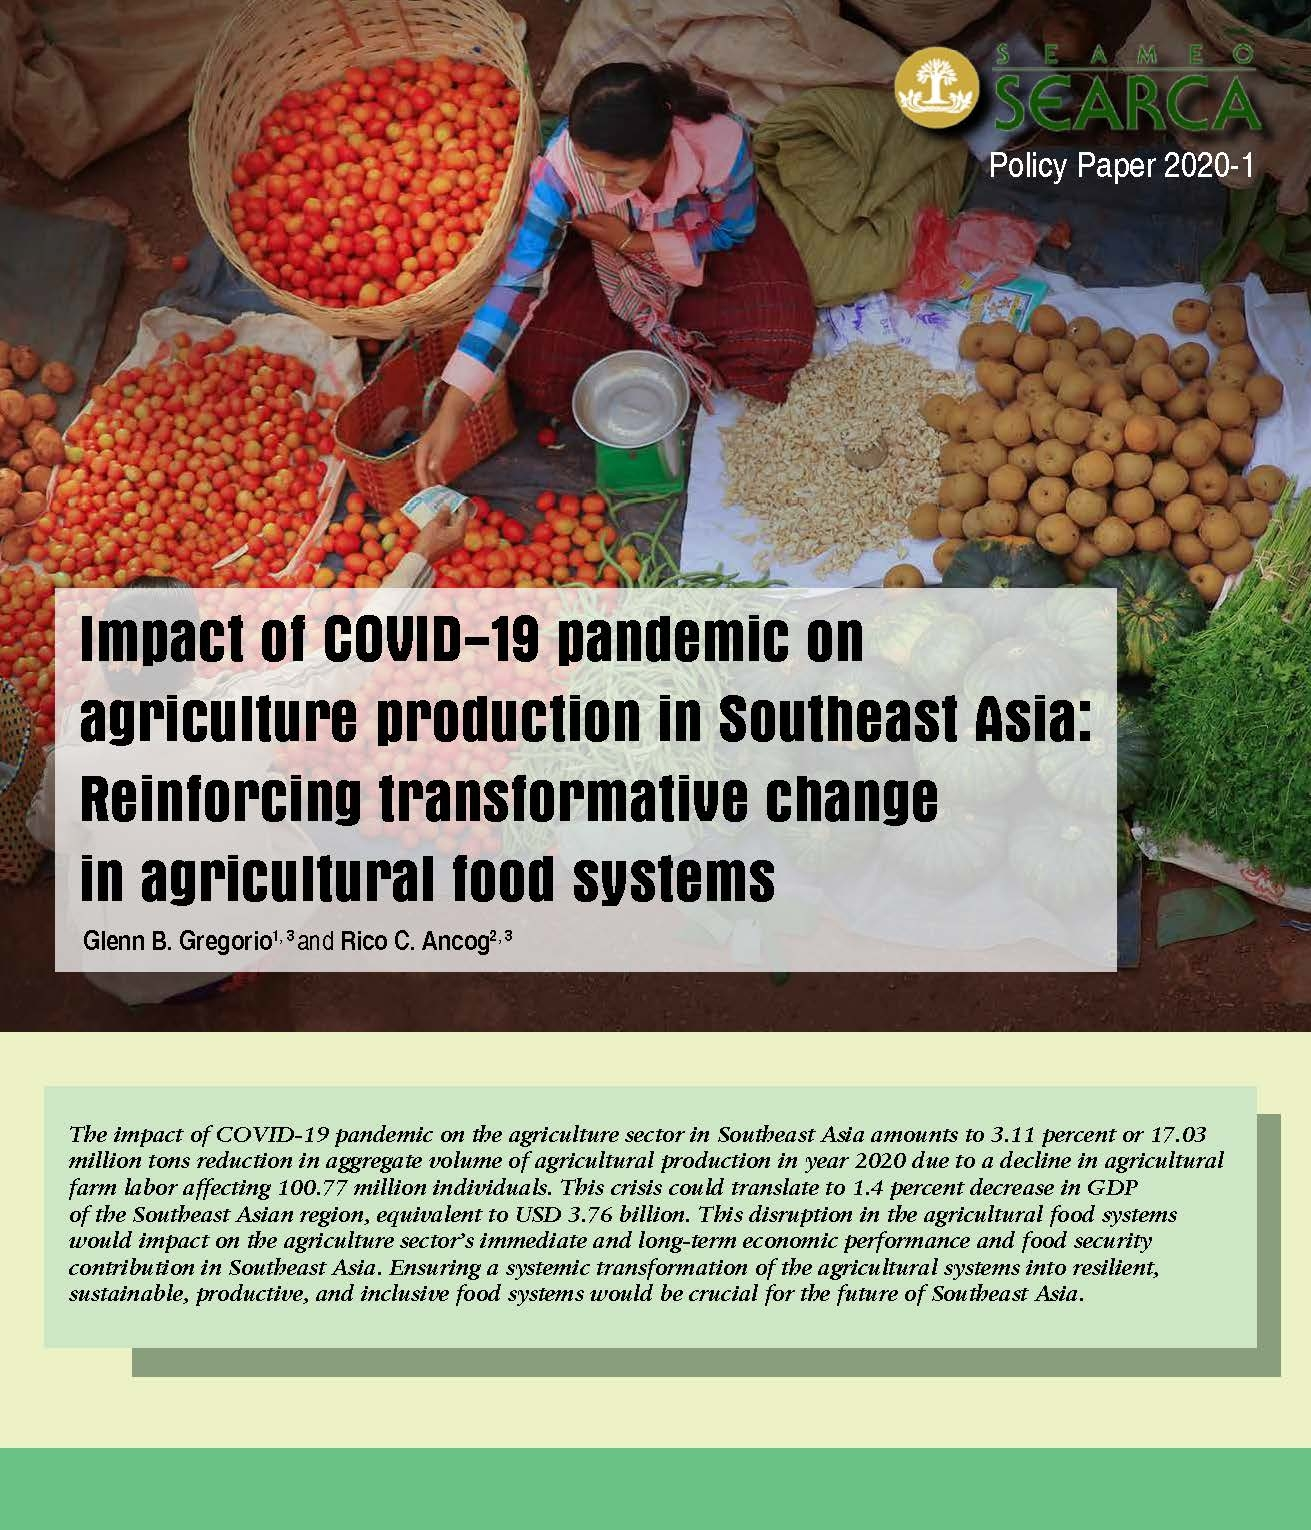 Impact of COVID-19 pandemic on agriculture production in Southeast Asia: Reinforcing transformative change in agricultural food systems